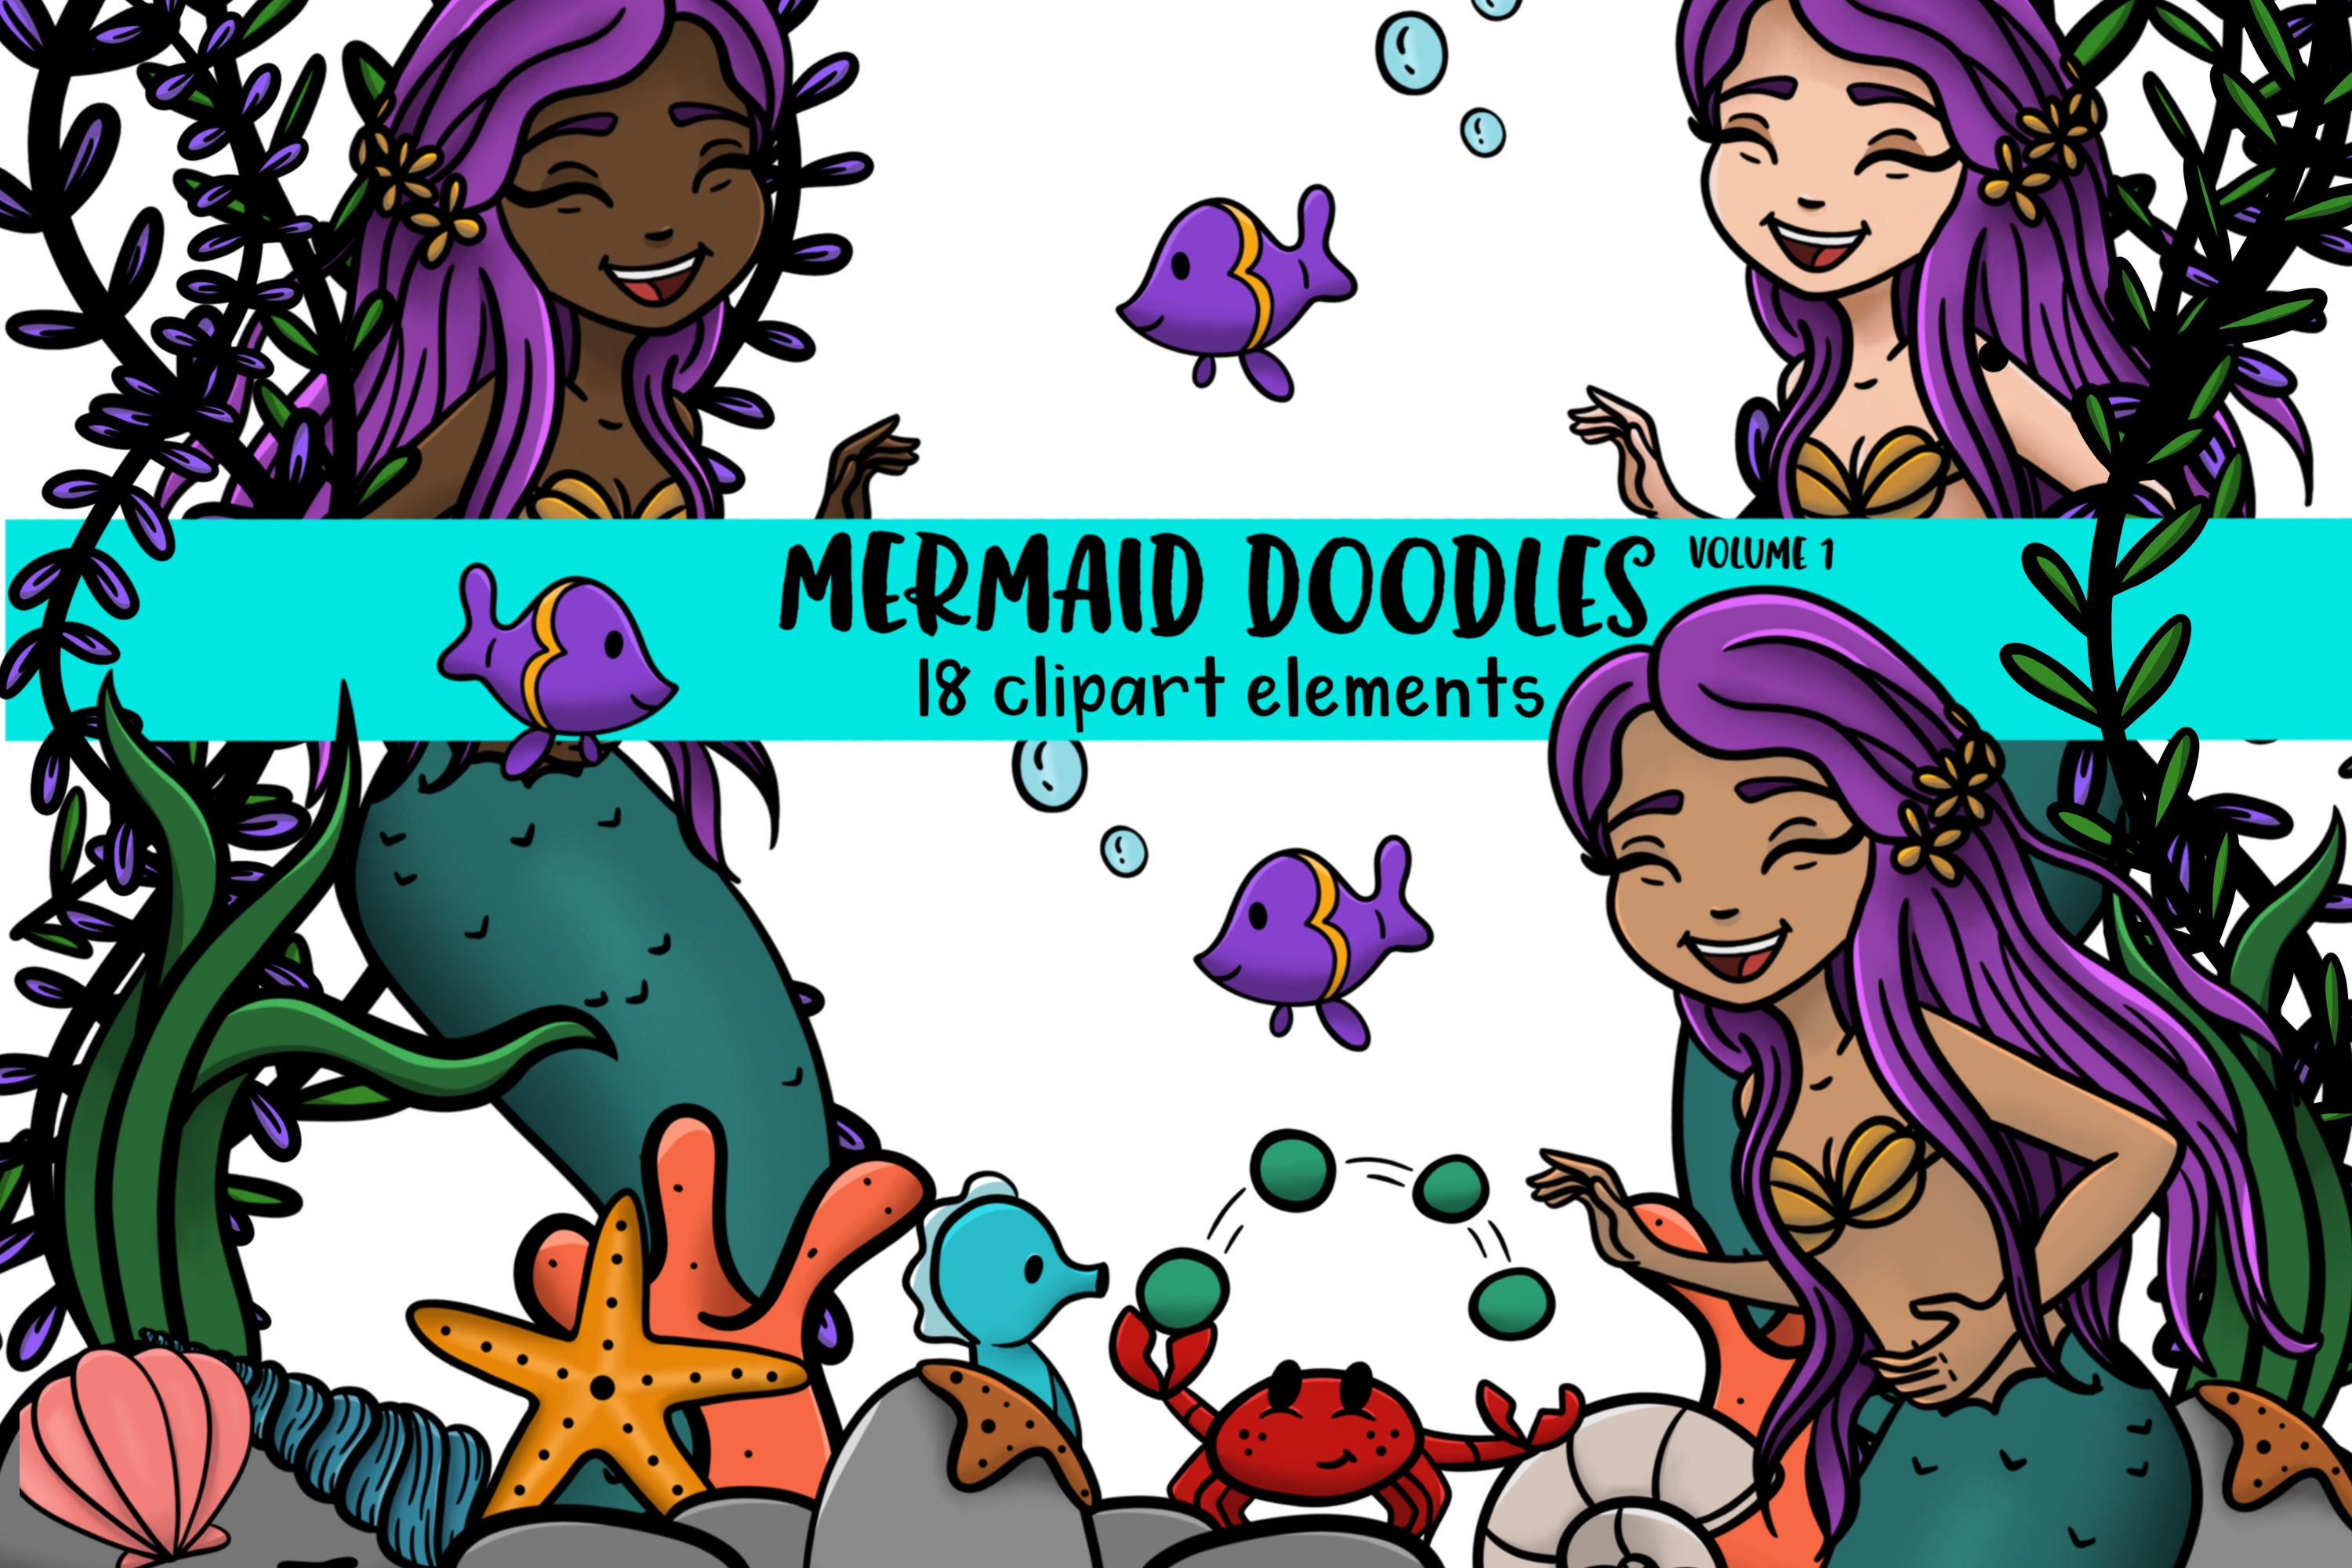 Mermaid Doodles Volume 1 18 clip art elements example image 1